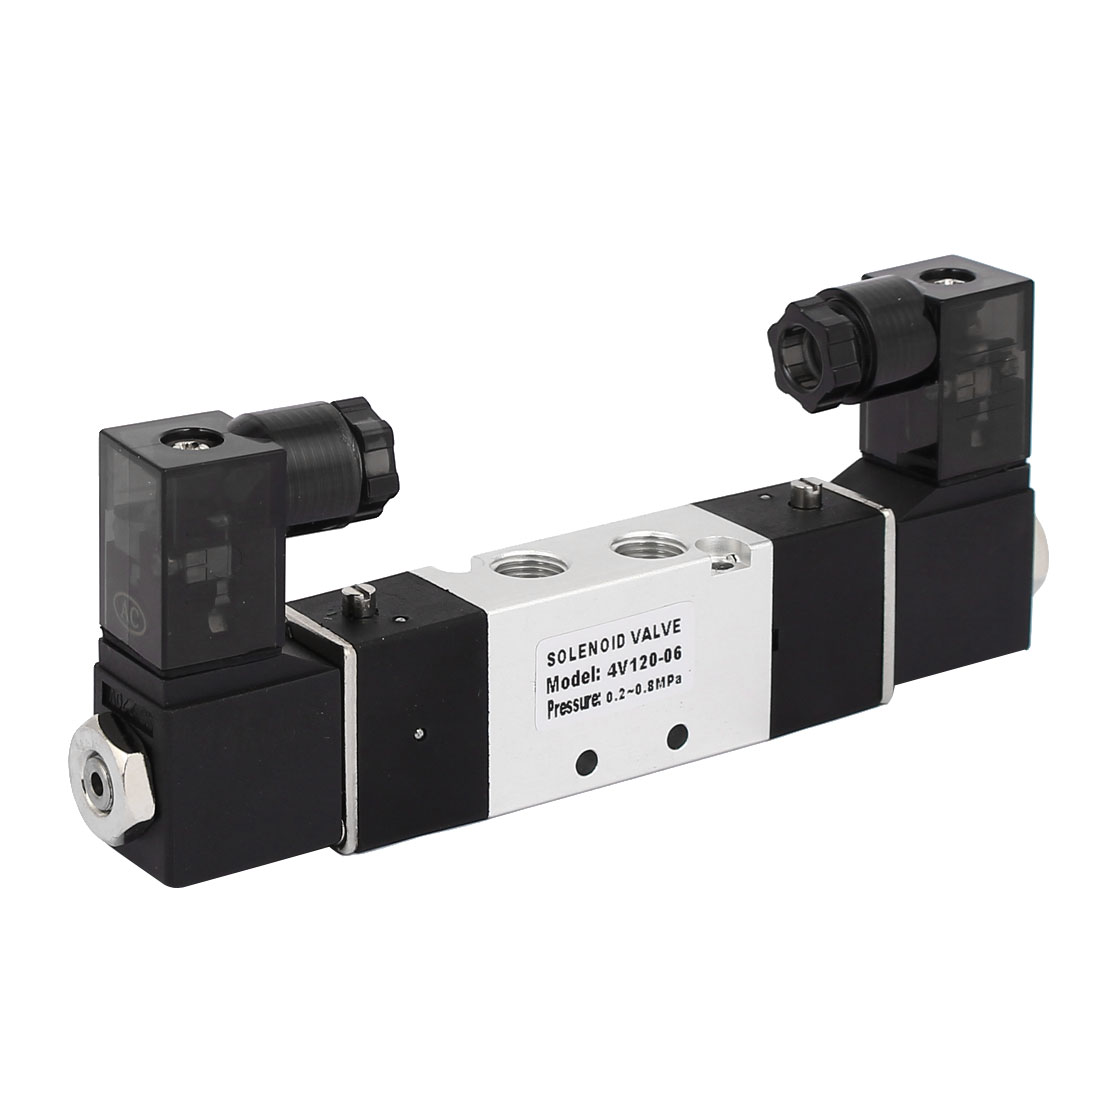 AC 220V 2 Position 5 Way Neutral Pneumatic Air Control Solenoid Valve 4V120-06